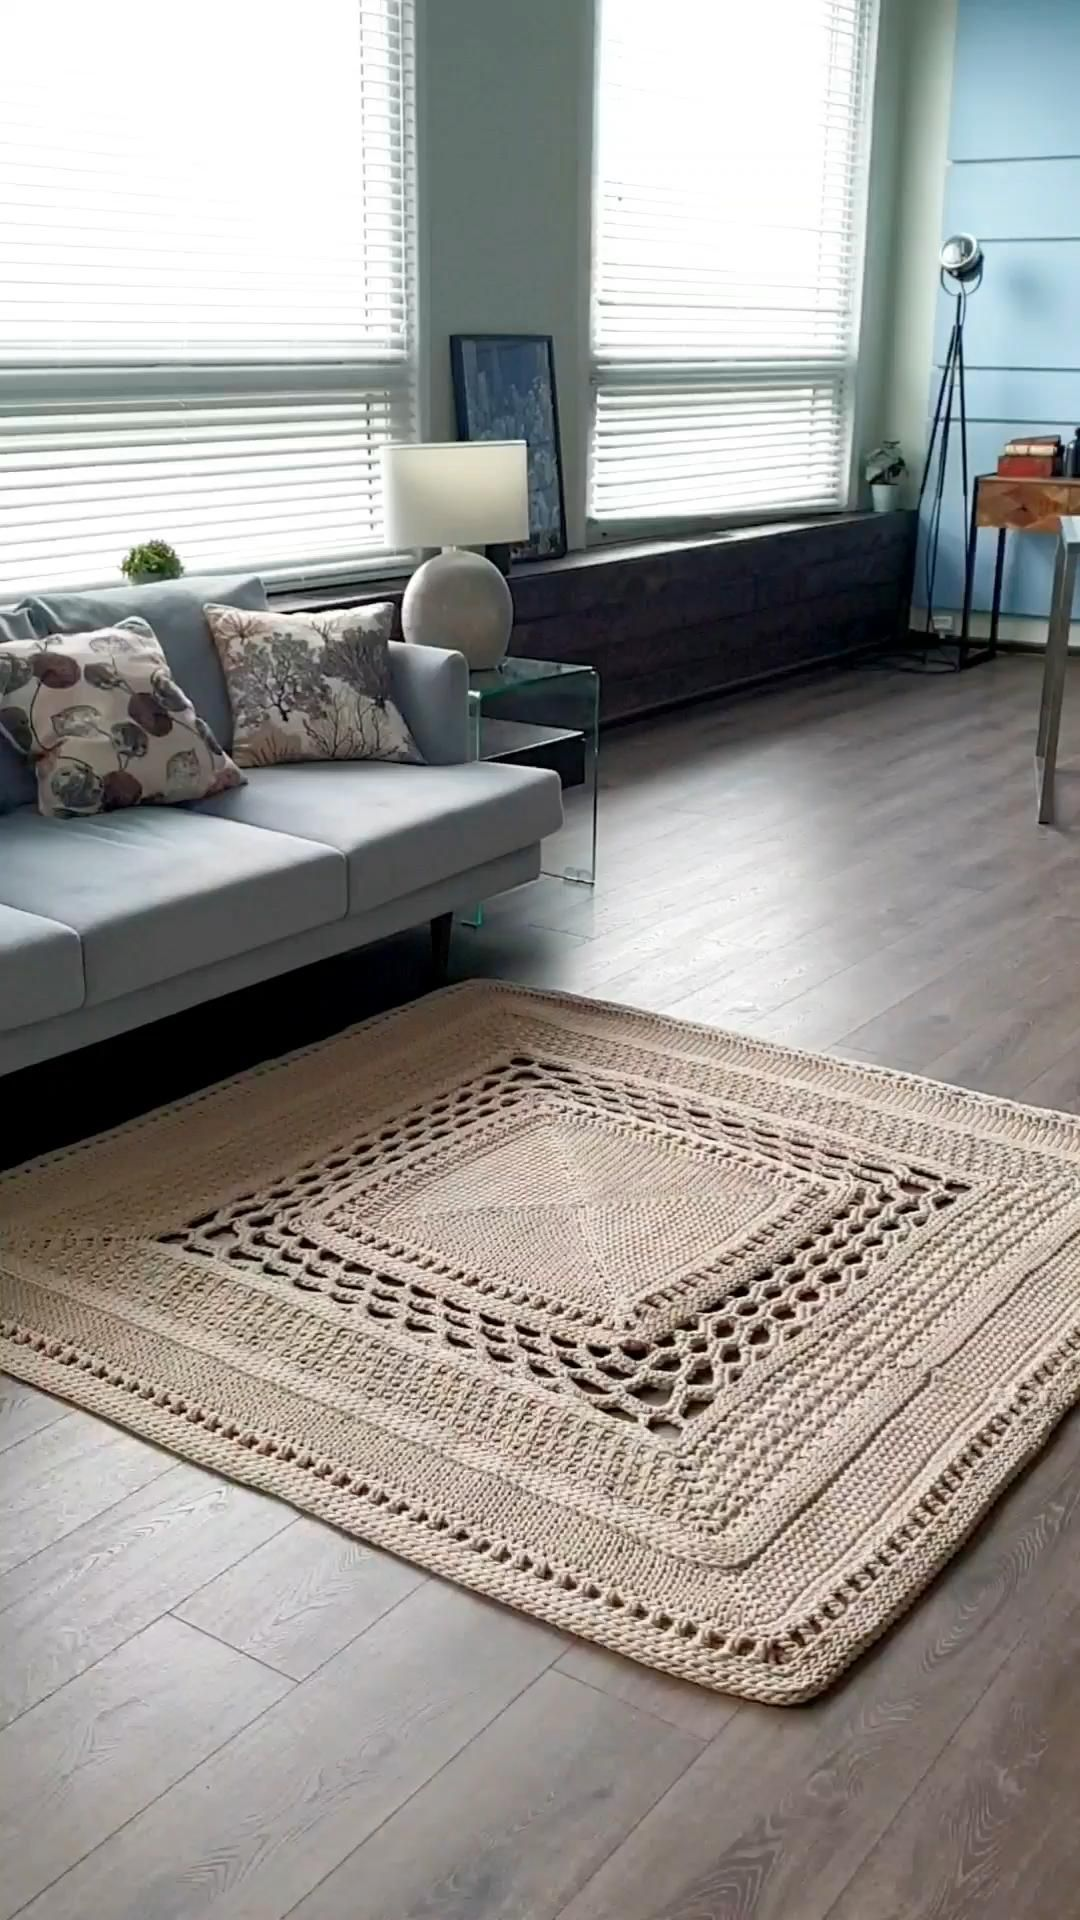 Crocheted square rug pattern LaceChicago by Lacemats. Video tutorial is available in English (subt